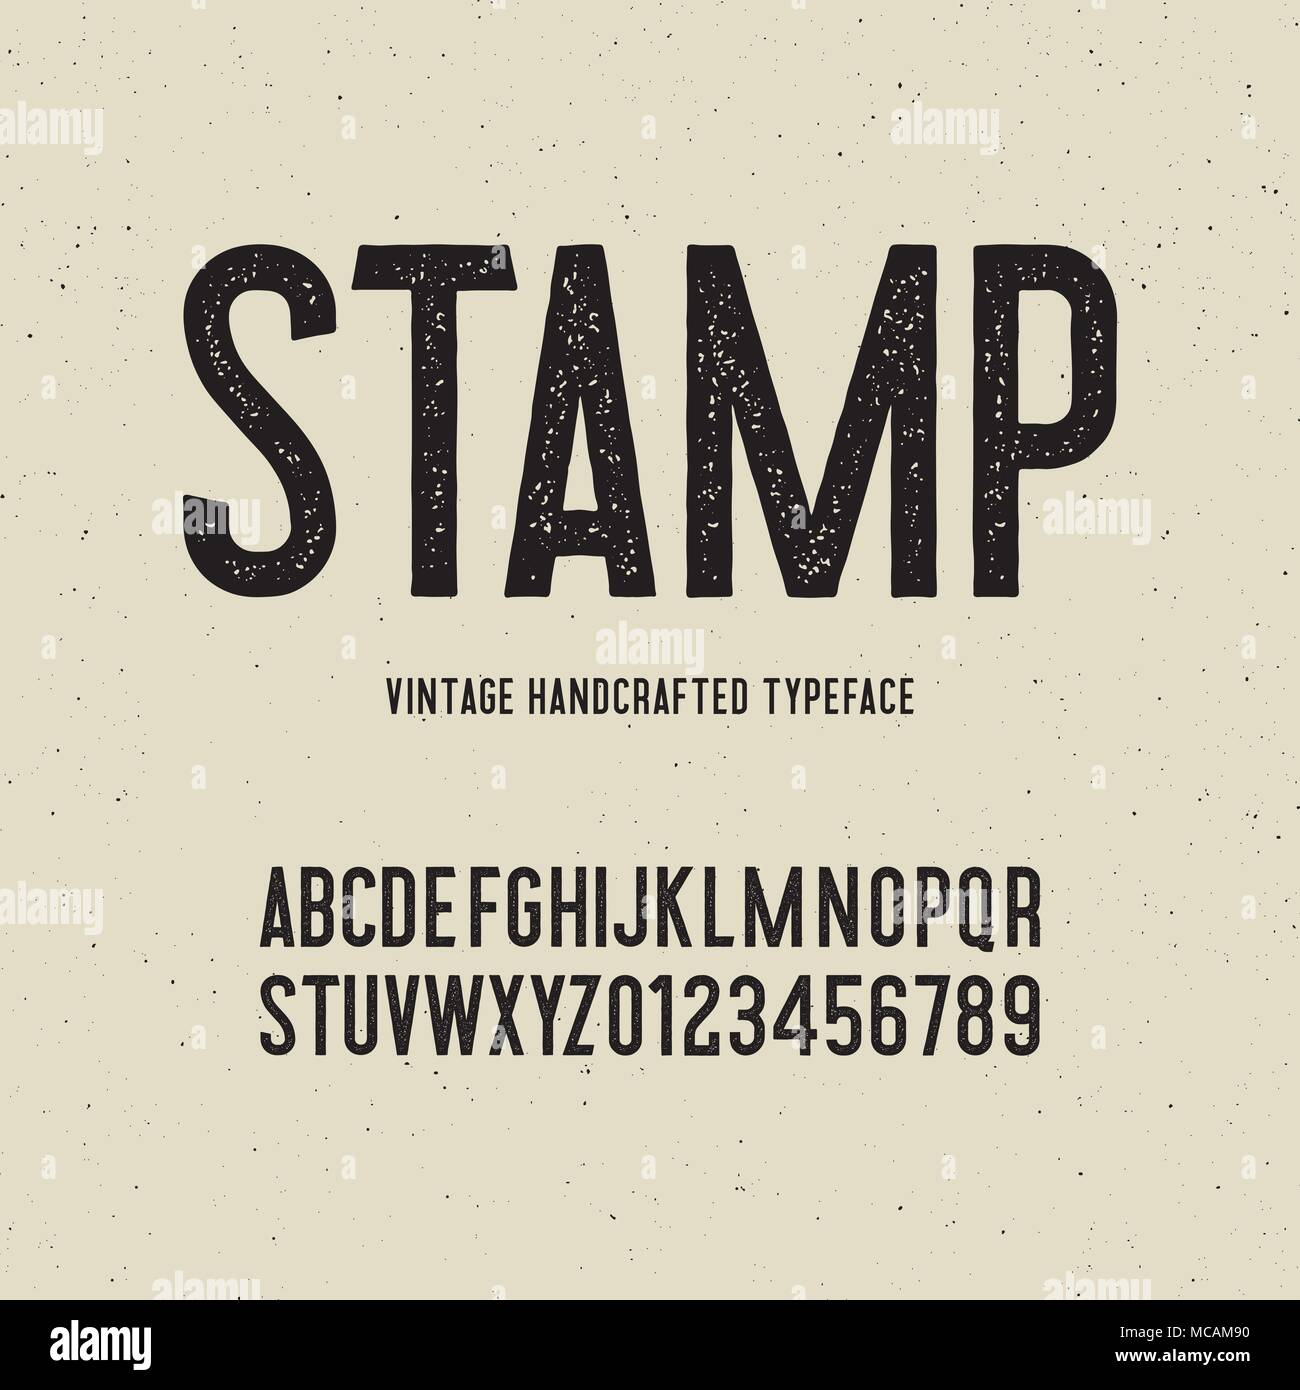 Vintage Handcrafted Typeface With Stamp Effect Vector Illustration